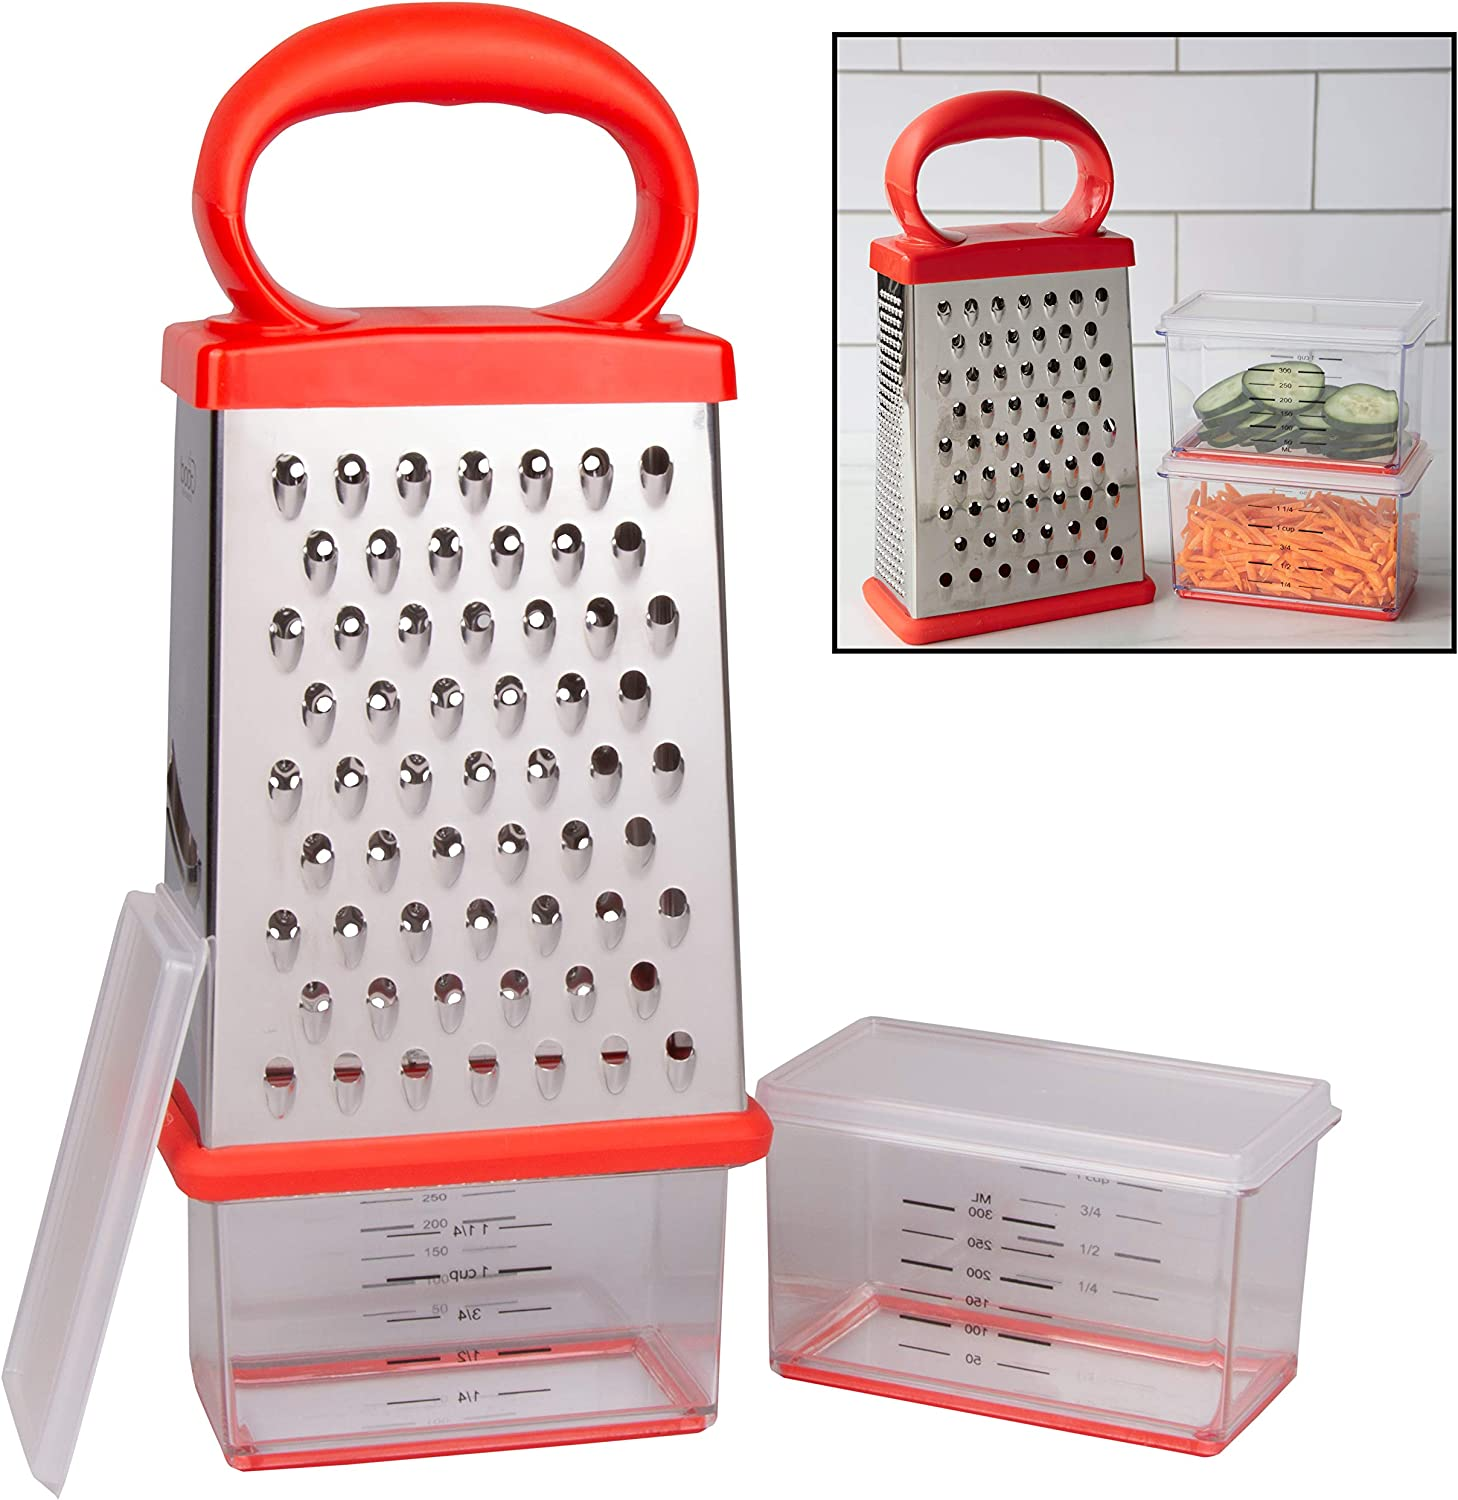 Box Cheese Grater W 2 Attachable Storage Containers 4 Sided Stainless Steel Slicer And Shredder 2 Hoppers For Cheeses Vegetables Chocolate Soft Grip Handle And Non Slip Base Amazon Ca Home Kitchen